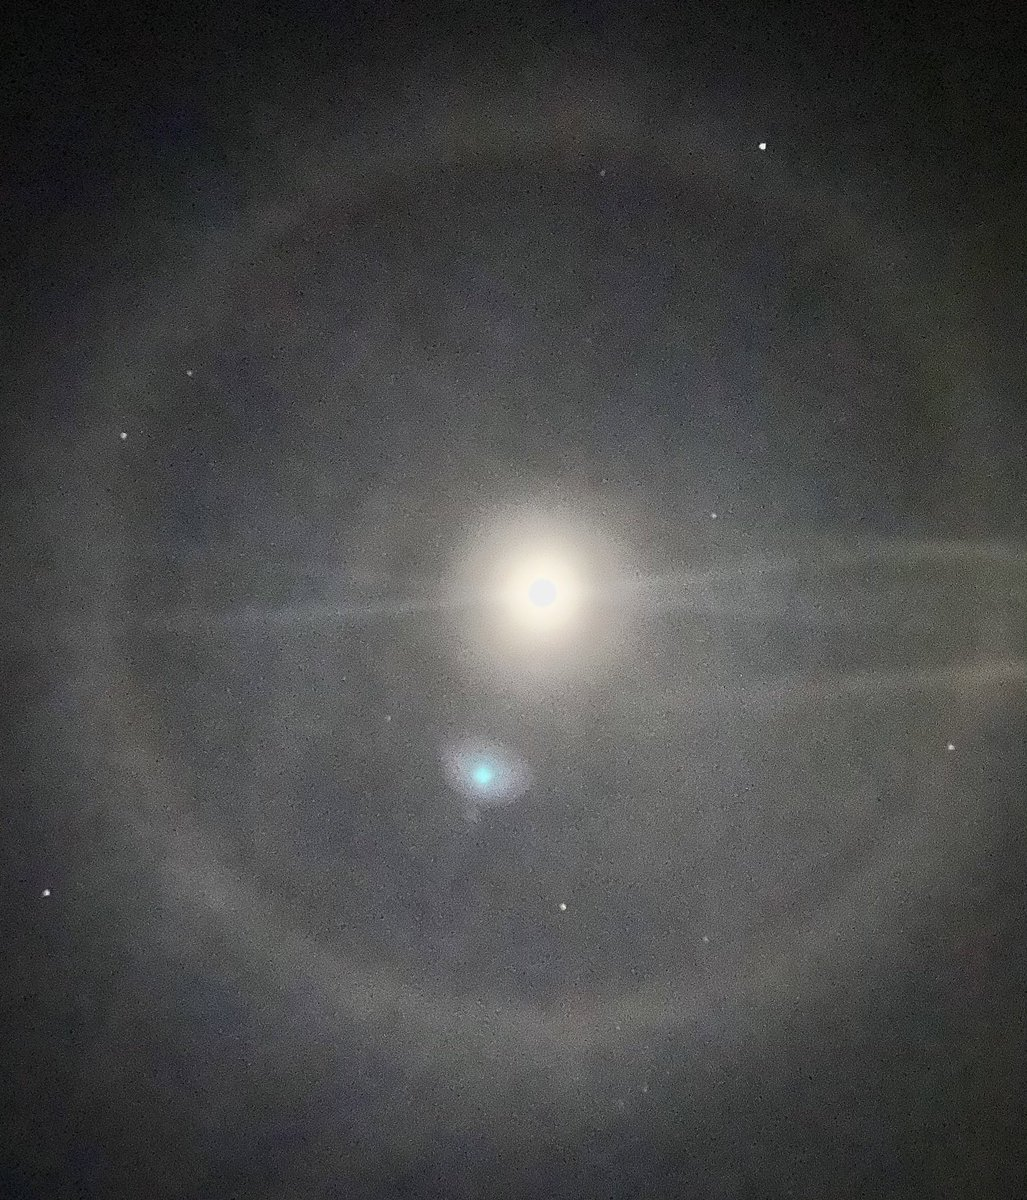 I just went for a walk and thought aliens were gonna land but turns out it's a lunar halo lol how pretty